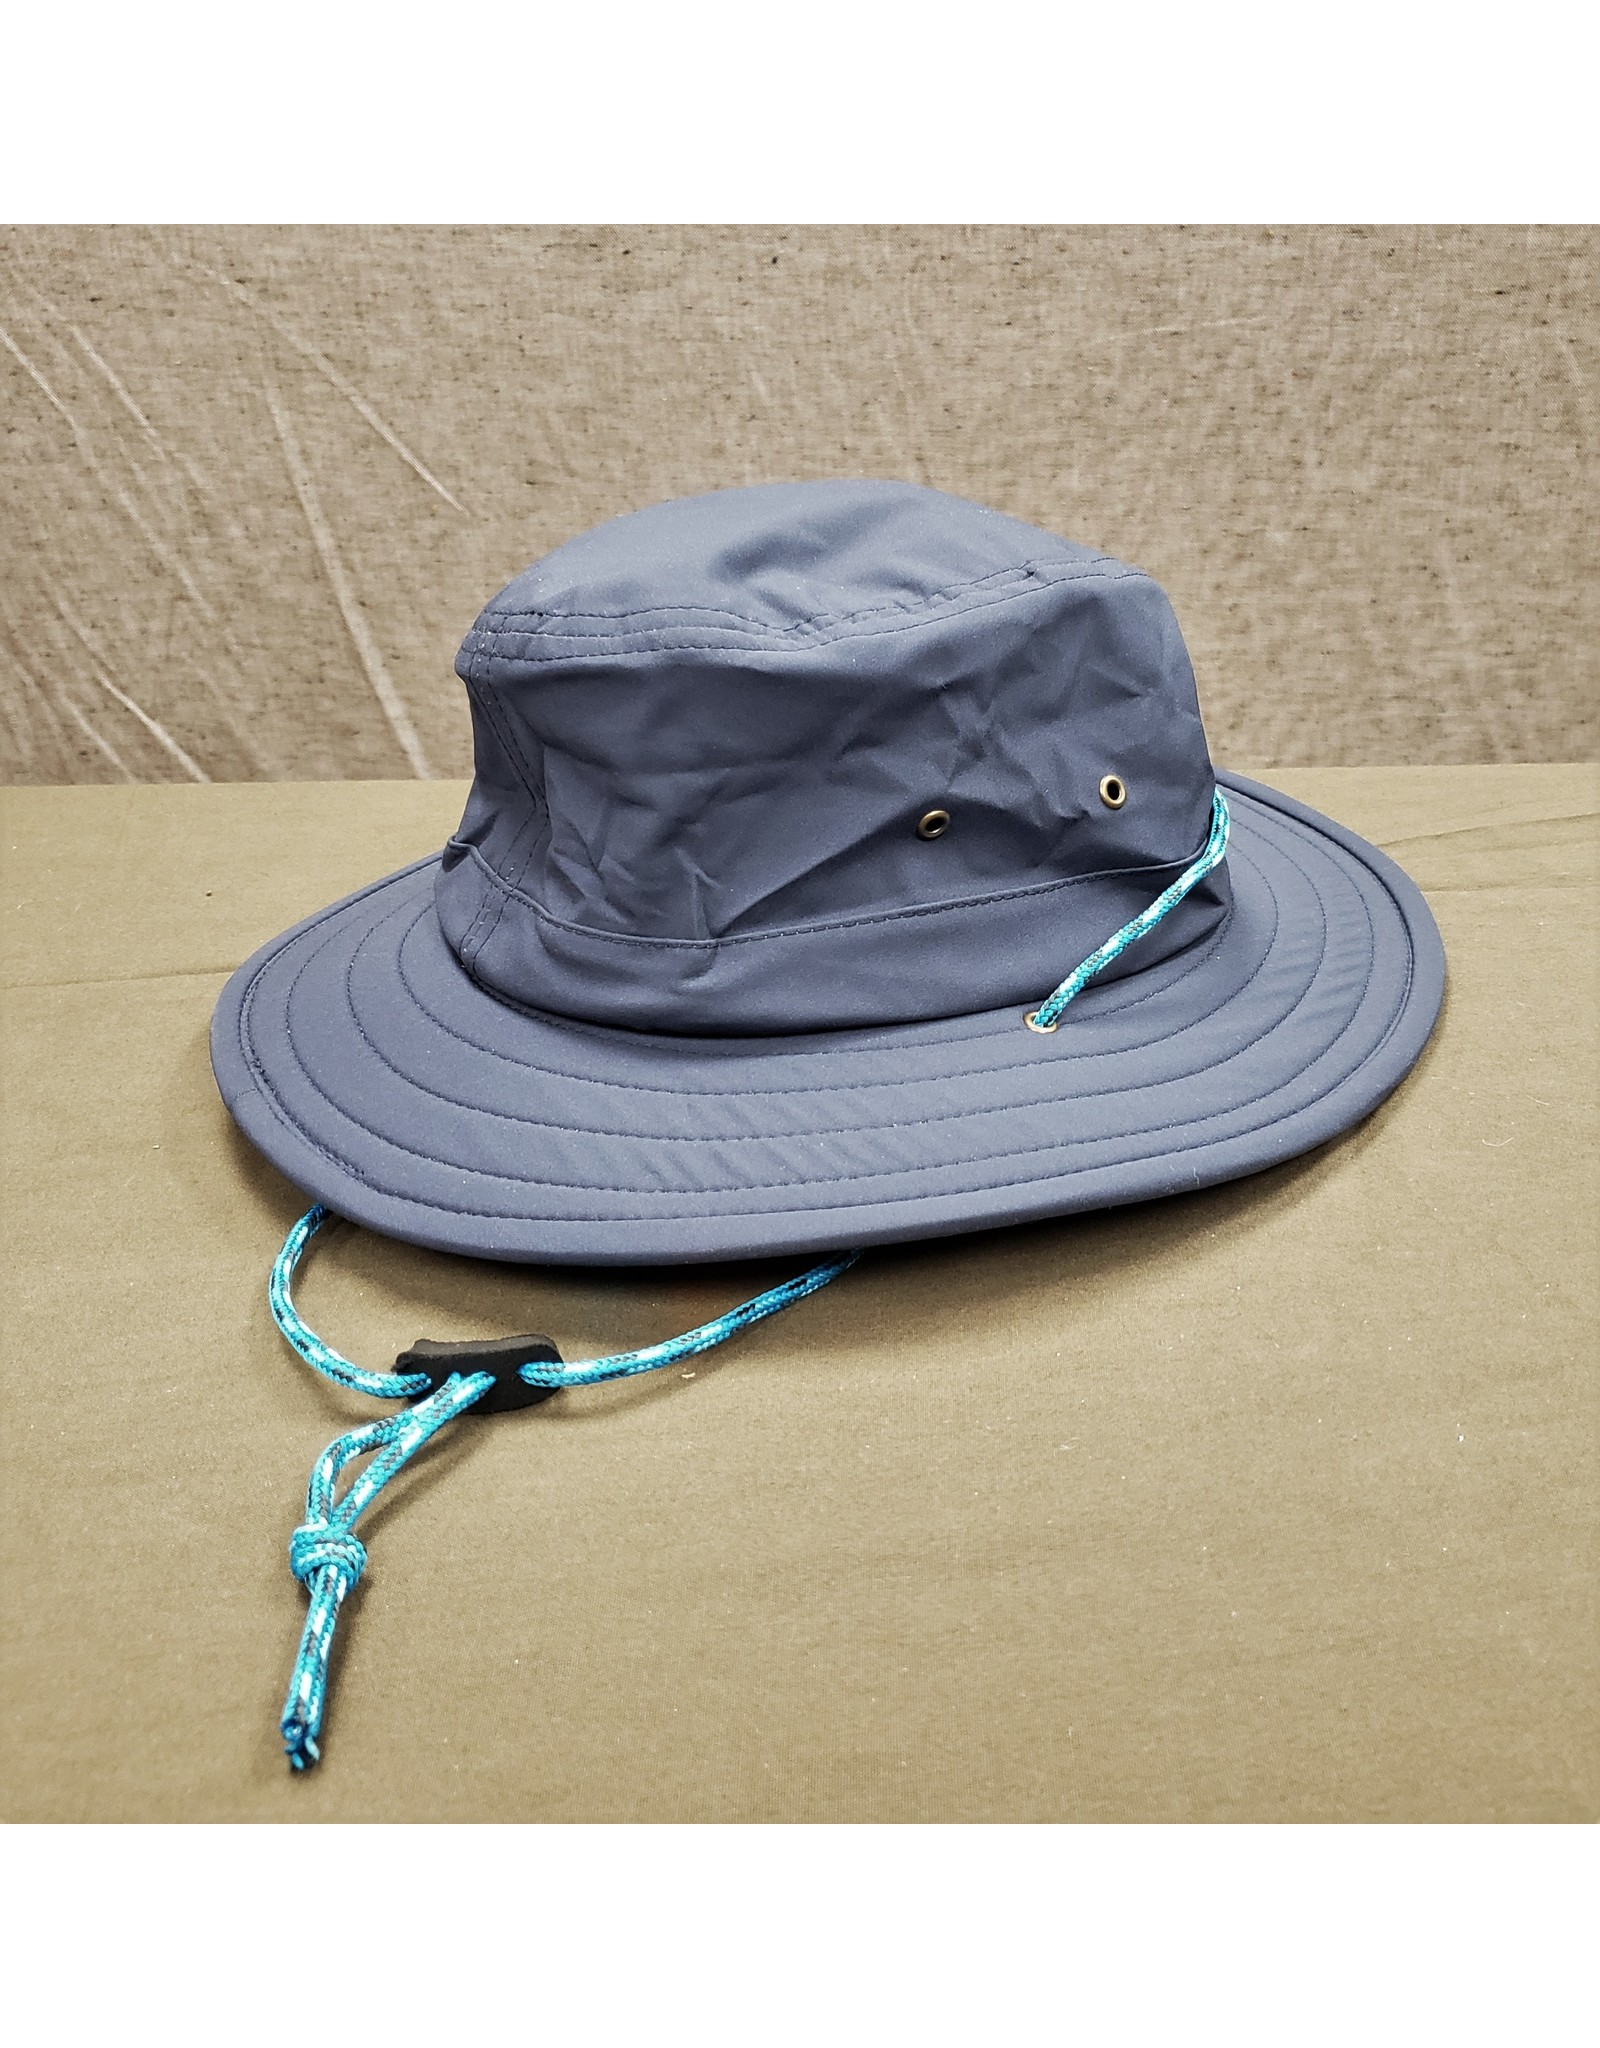 KOORINGAL KOORINGAL NAVY MENS AND BRIM ENDURE